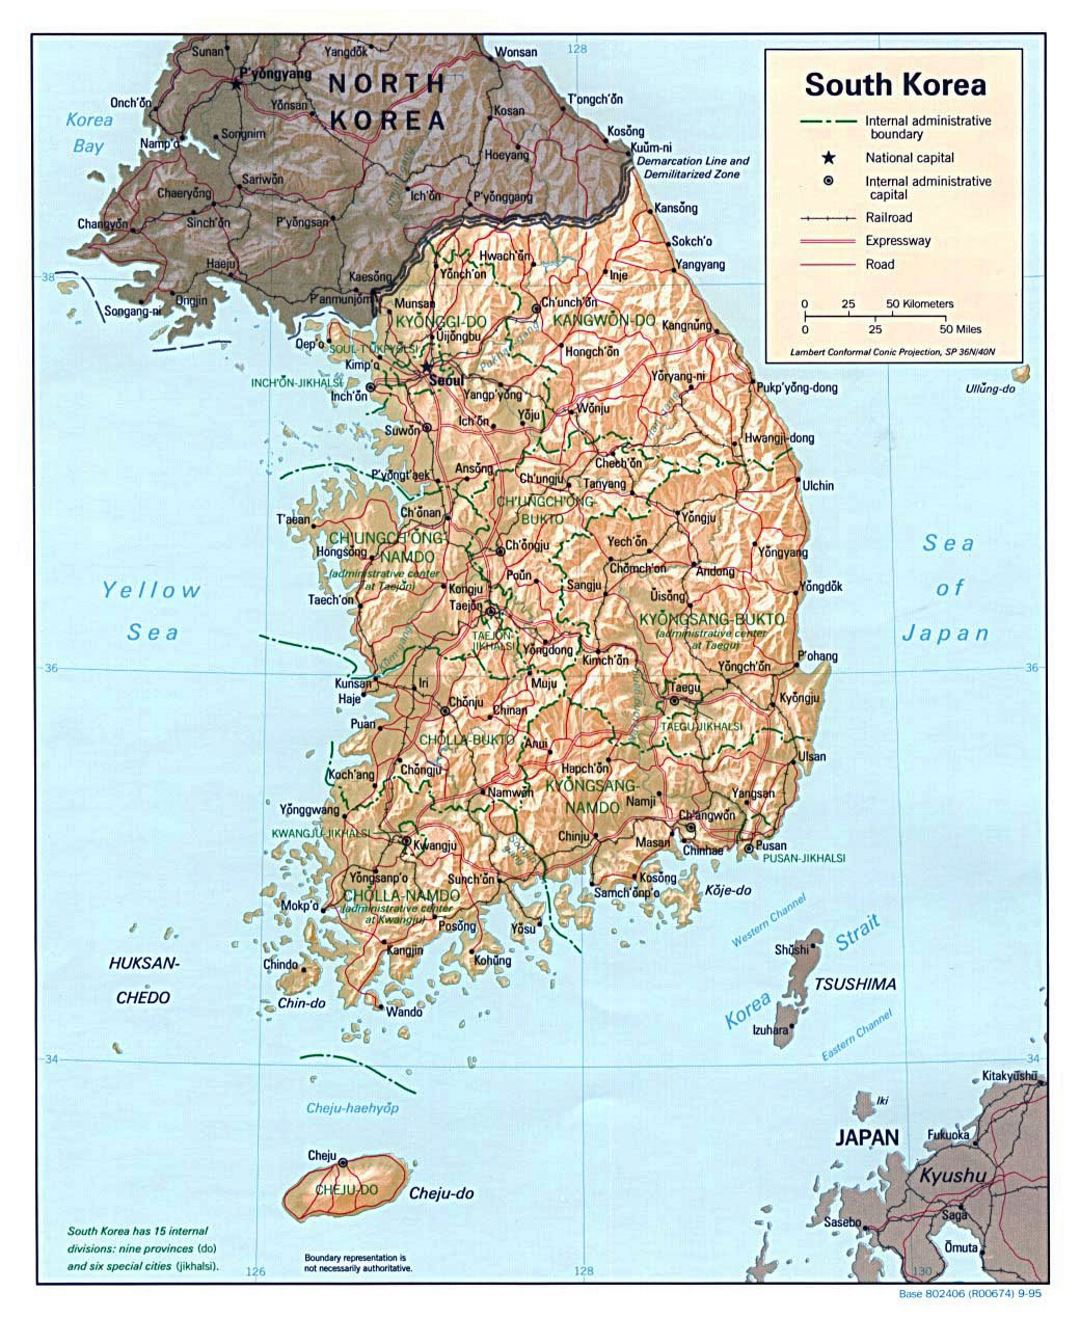 Detailed political and administrative map of South Korea with relief, roads, railroads and major cities - 1995